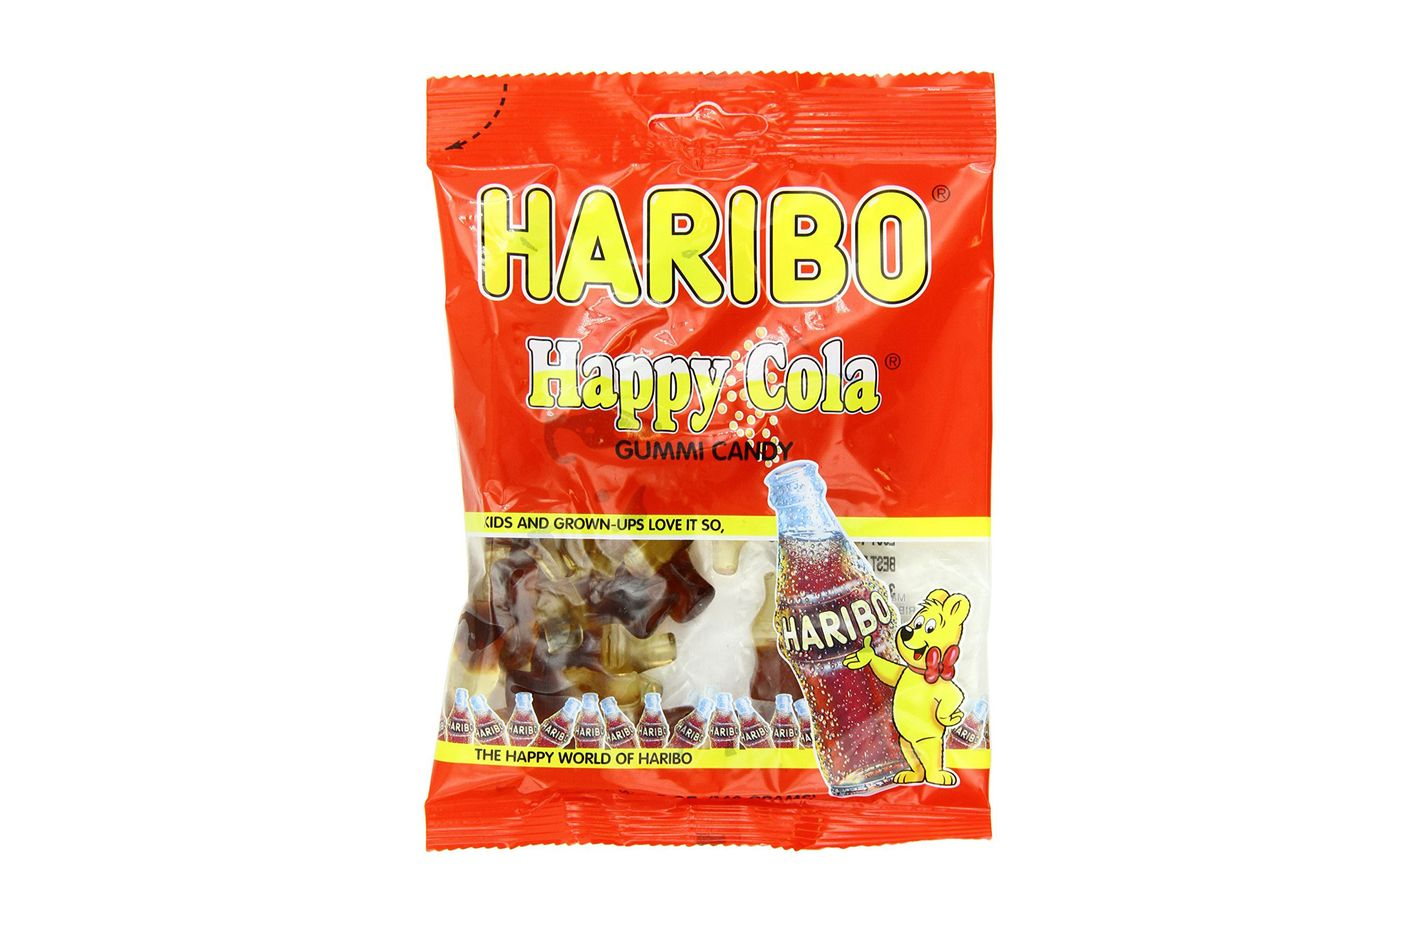 Haribo Happy Cola Gummi Candy